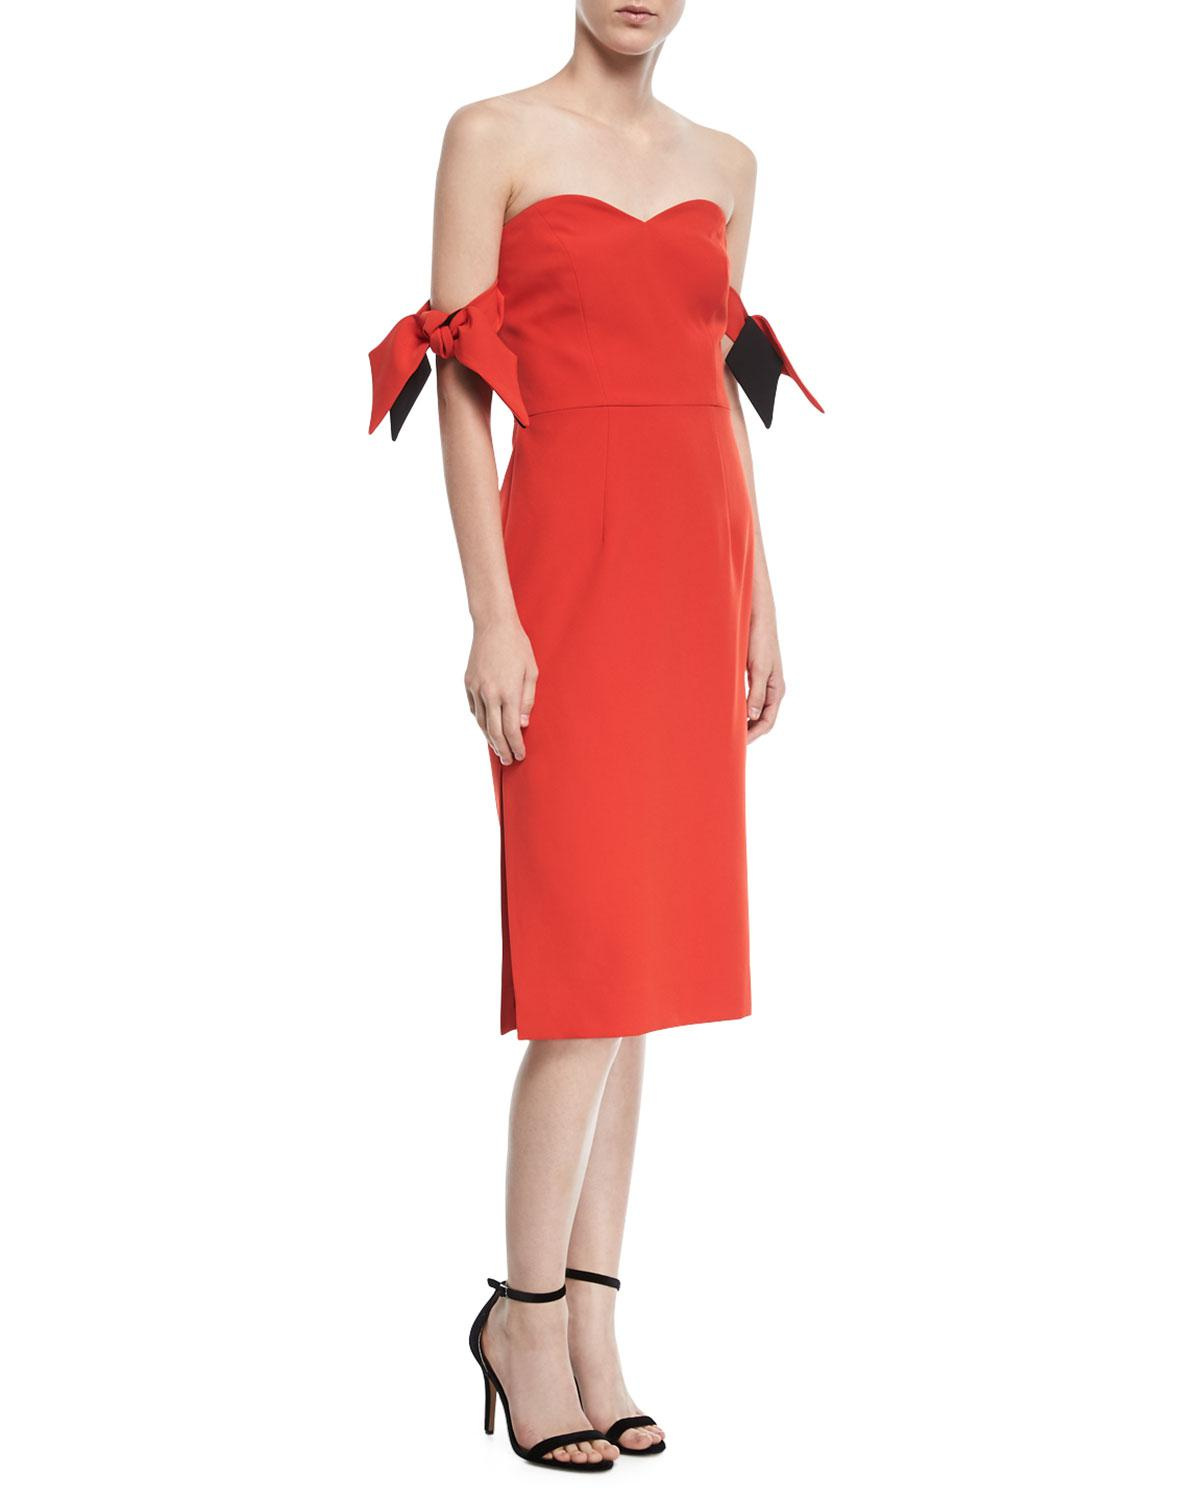 845a7b52665 Lyst - MILLY Brie Off-shoulder Italian Cady Cocktaildress in Red